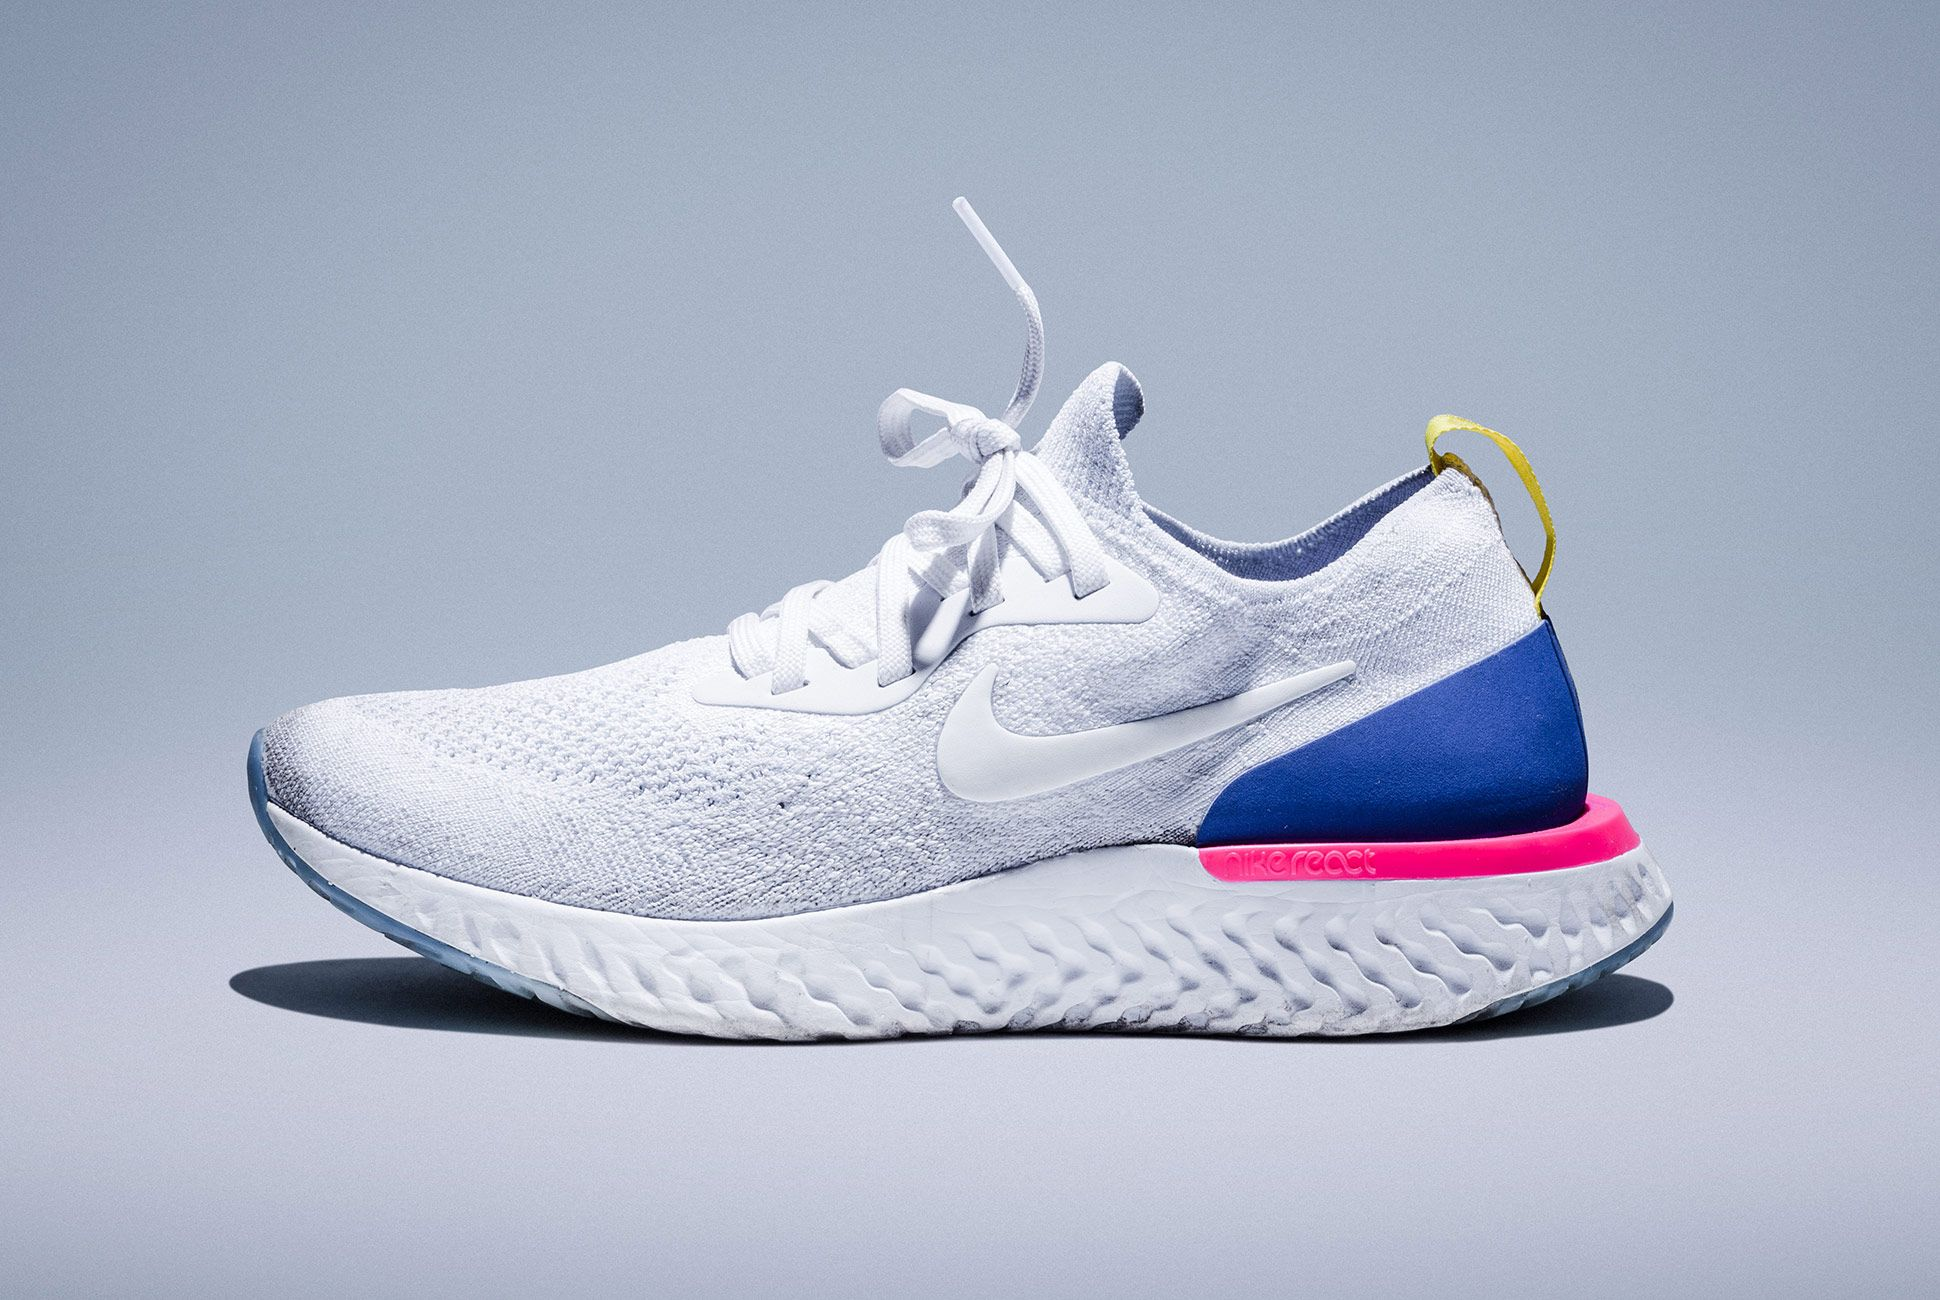 Nike Epic React Review Worth All the Hype? \u2022 Gear Patrol